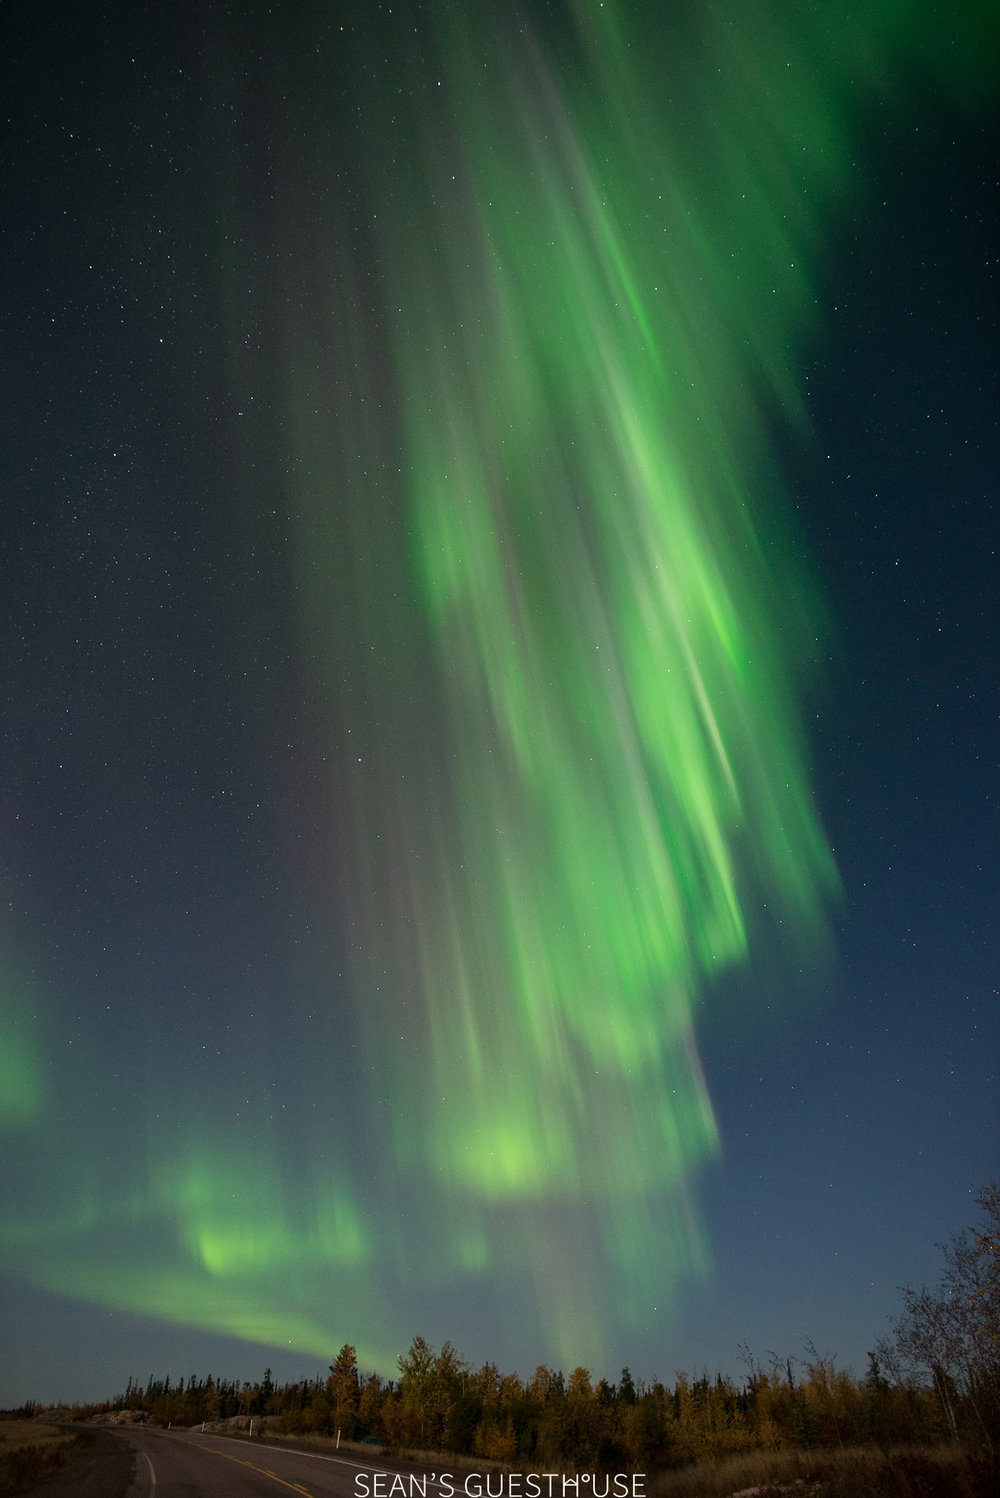 Sean's Guesthouse - Best Place to See the Northern Lights - 4.jpg